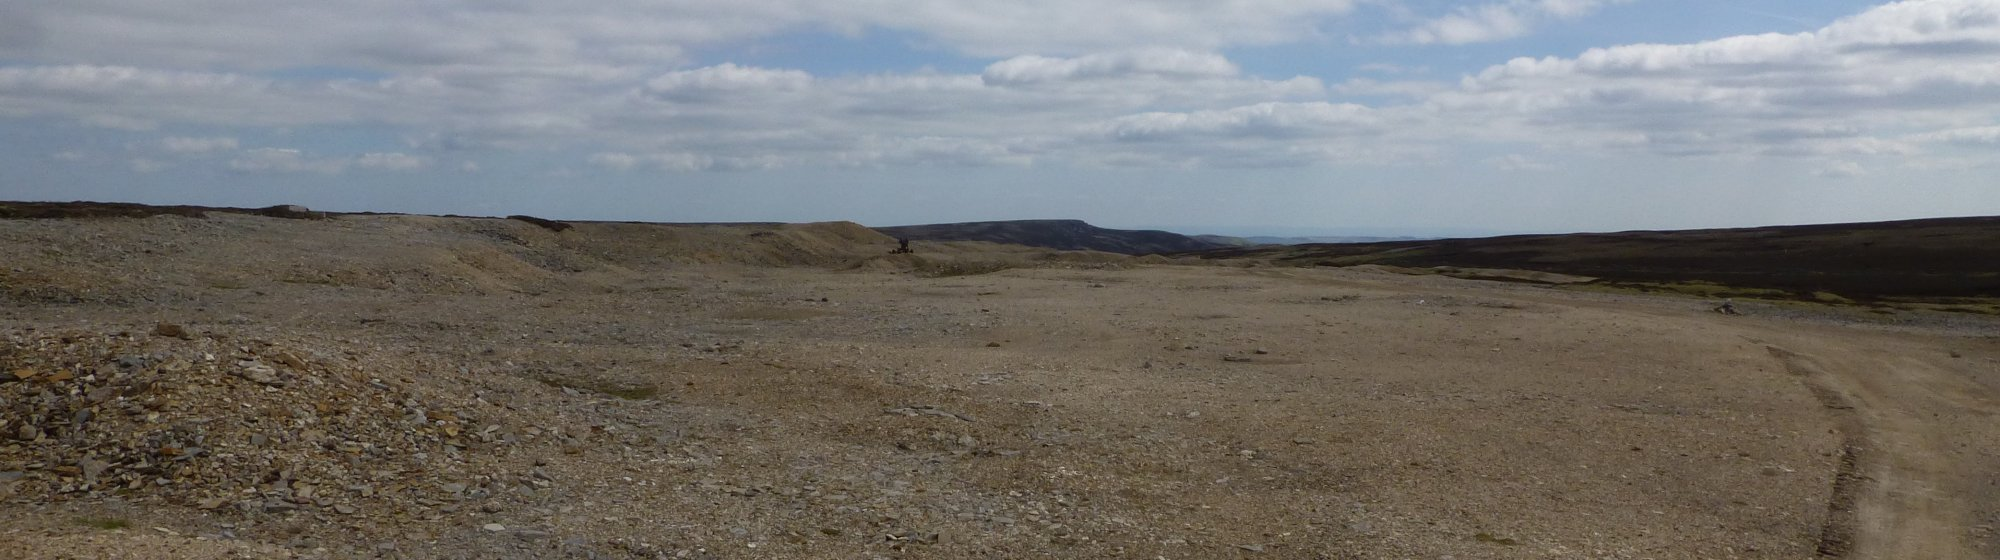 Stone crusher sits in the vast moonscape of spoil heaps